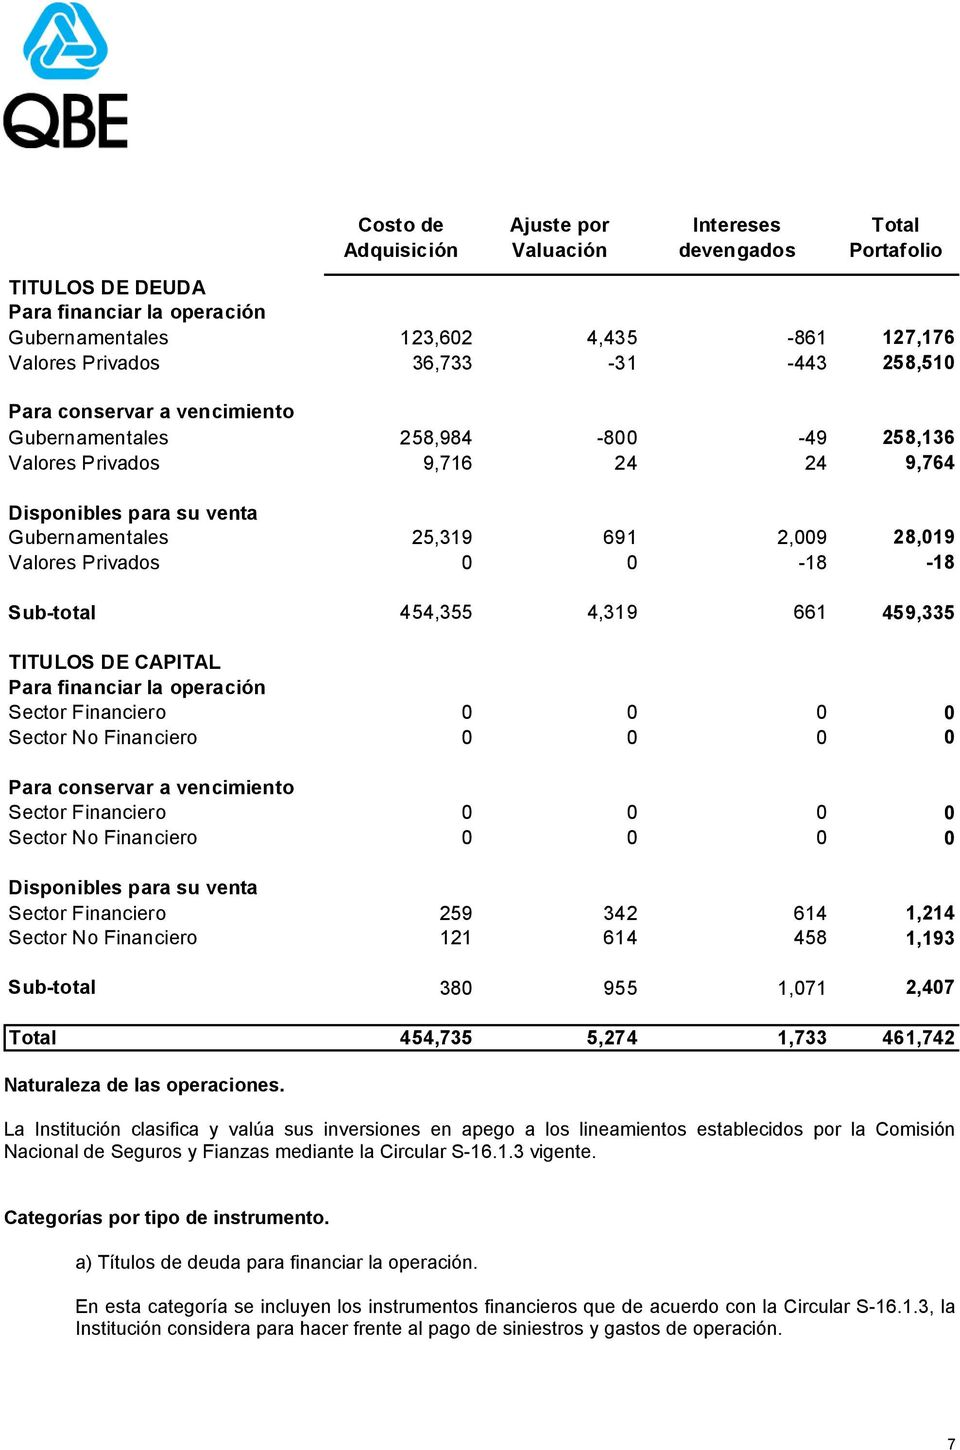 0-18 -18 Sub-total 454,355 4,319 661 459,335 TITULOS DE CAPITAL Para financiar la operación Sector Financiero 0 0 0 0 Sector No Financiero 0 0 0 0 Para conservar a vencimiento Sector Financiero 0 0 0